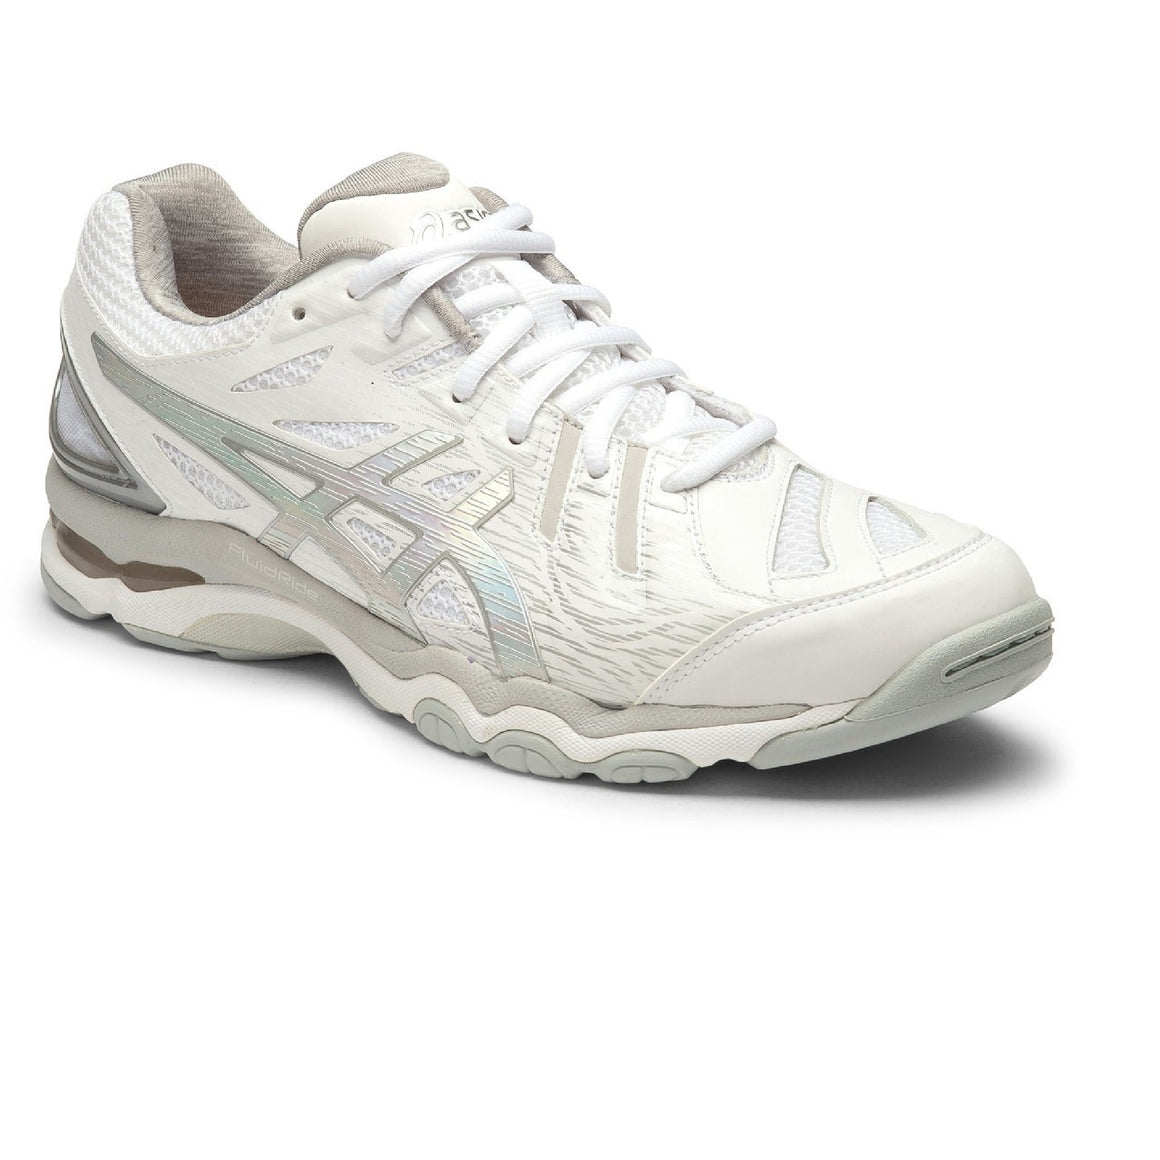 Ladies Asics Gel Netburner Super 6 White/Hologram Silver